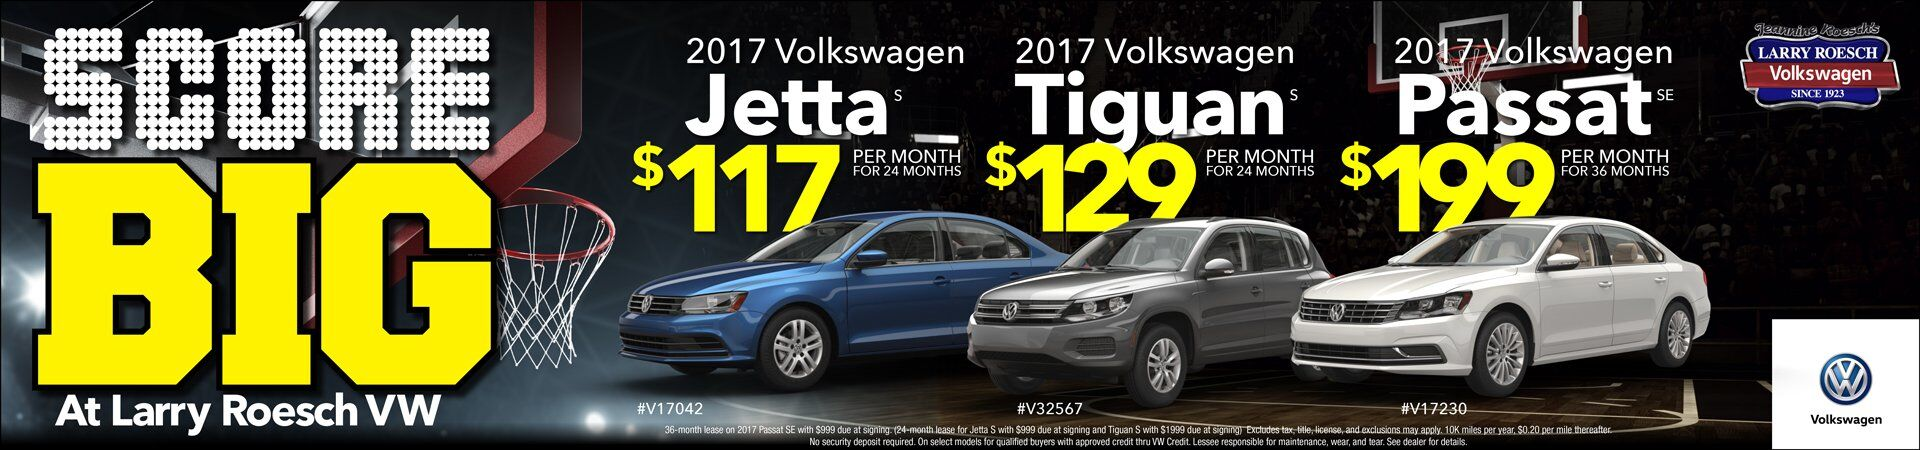 VW Lease Prices 2